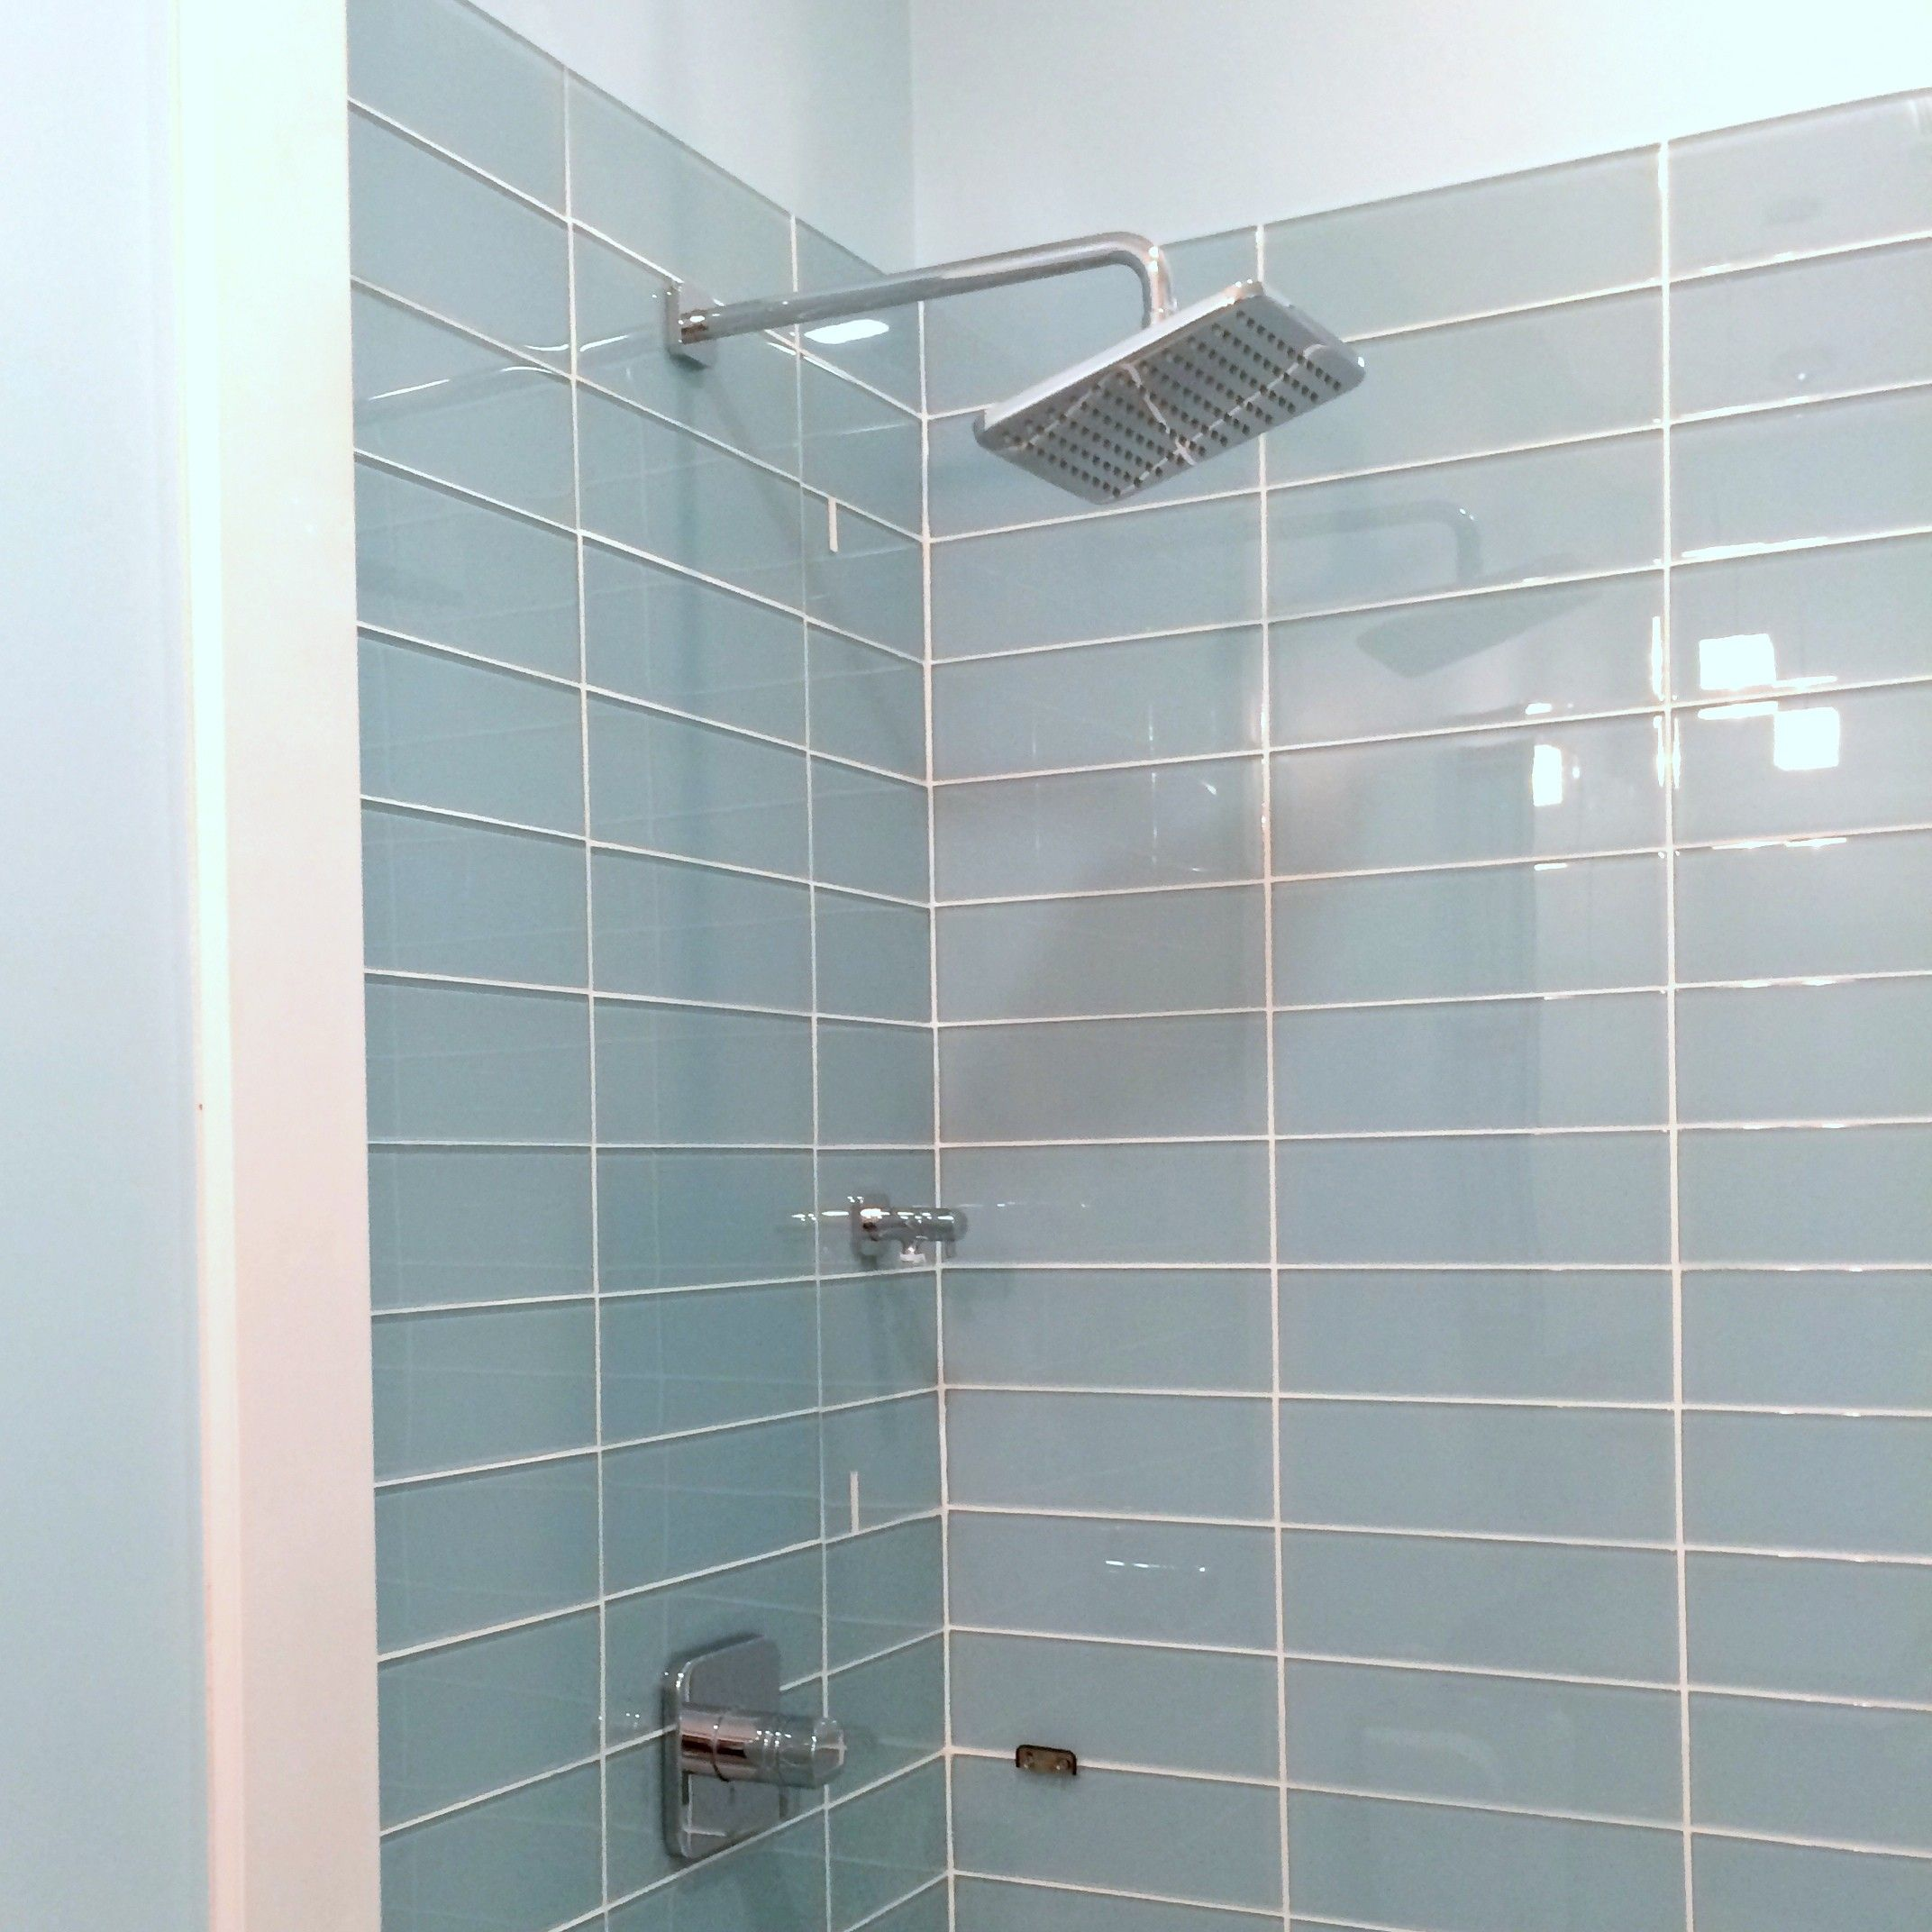 Lush vapor 4x12 pale blue glass subway tile shower for Large glass tiles for bathroom